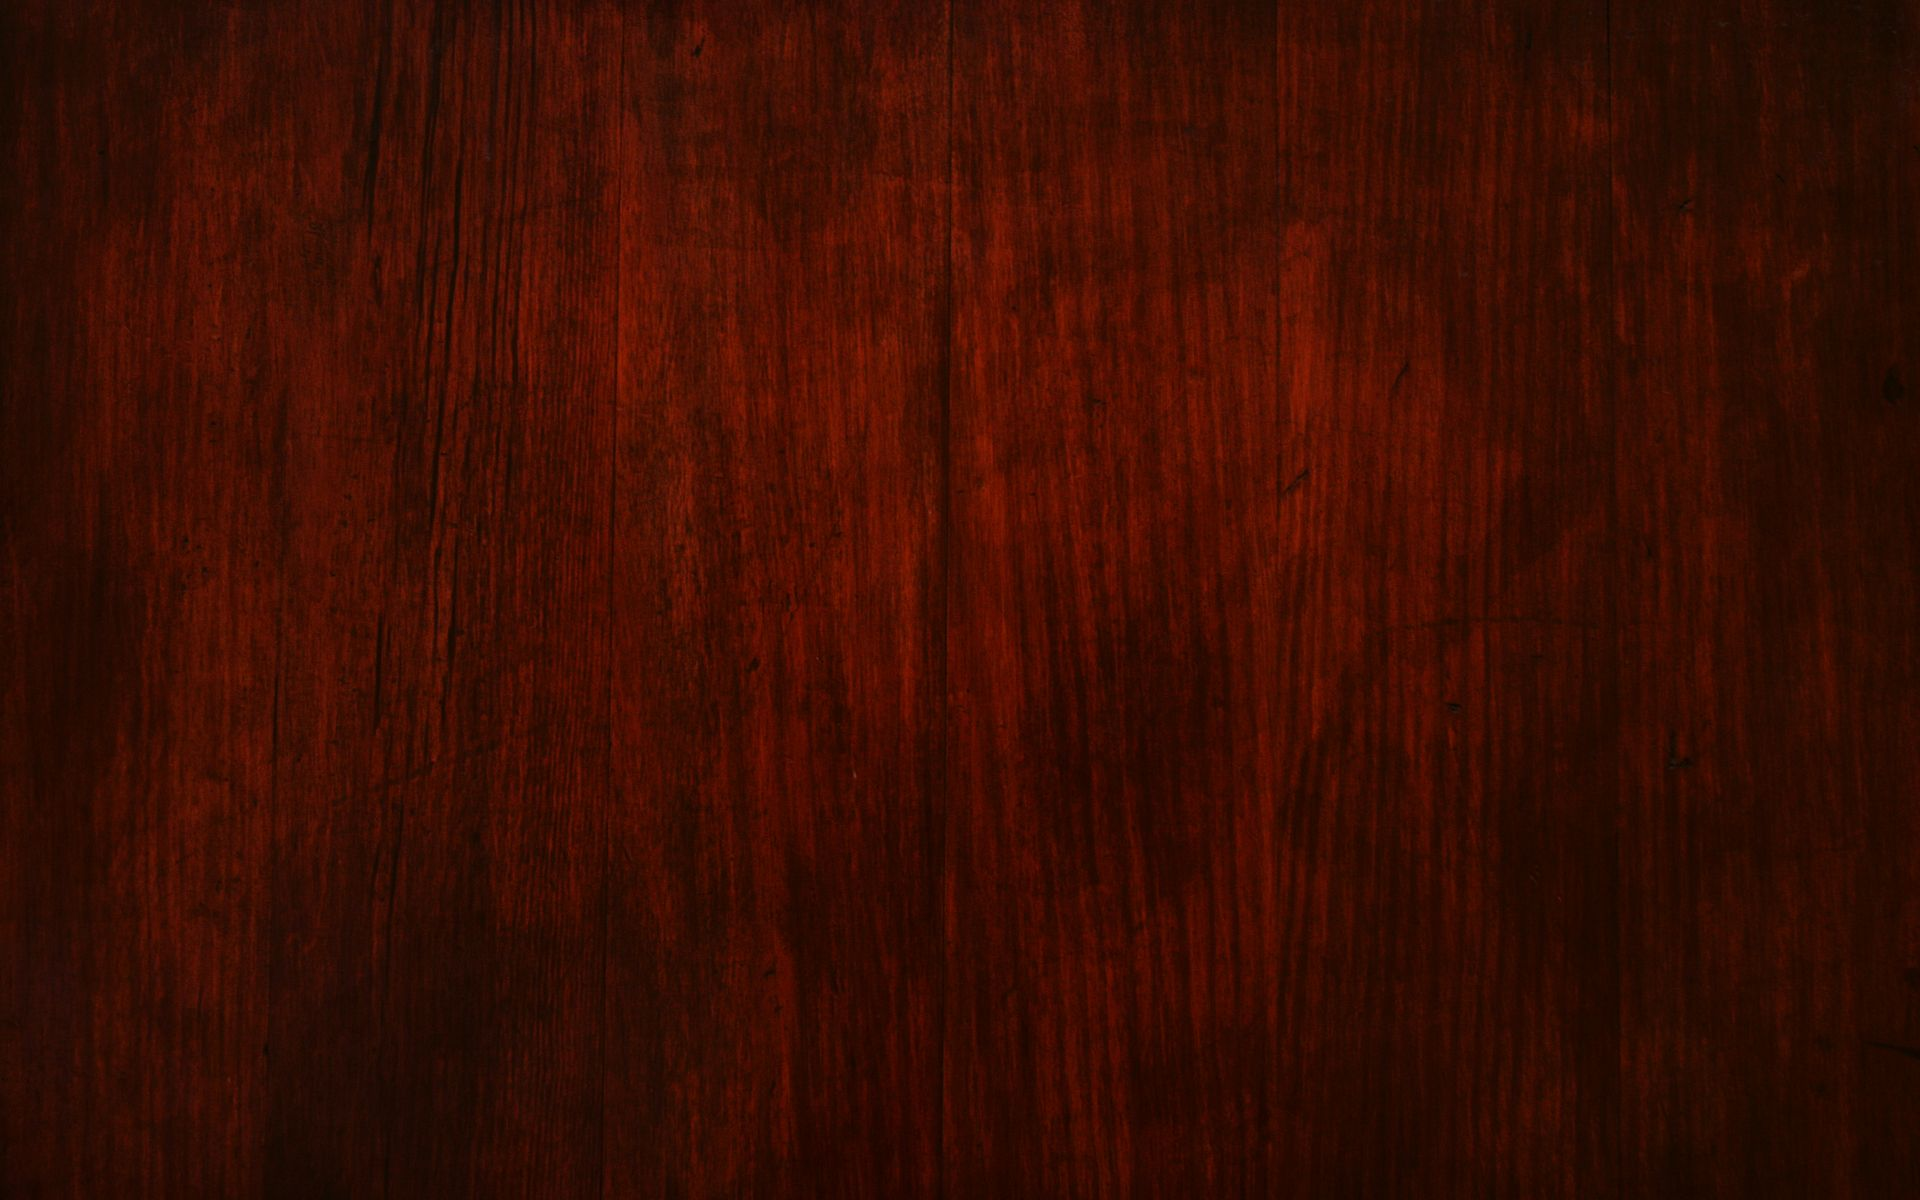 Red Wood Young Textures Wood Texture Simple Background 1920x1200